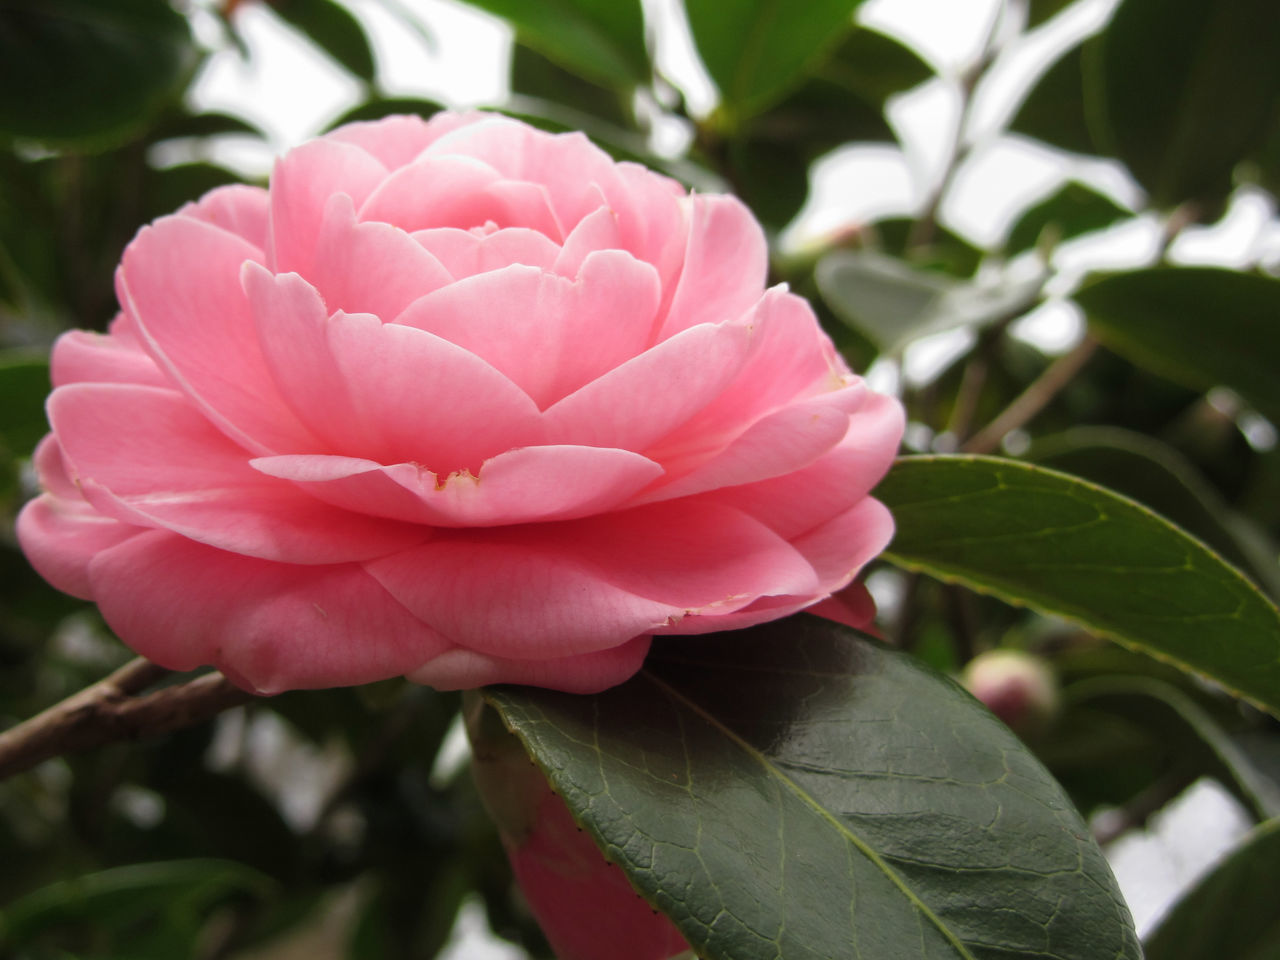 Ancient japanese cultivar of pink Camellia japonica flower known as Otome Tsubaki Ancient Anniversary Birthday Bloom Blooming Blossom Bush Camelia Camellia Camellia Japonica Celebration Cultivar Decorative Flora Flower Garden Japanese  Ornamental Otome Tsubaki Petal Pink Romantic Shrub Theaceae Wedding